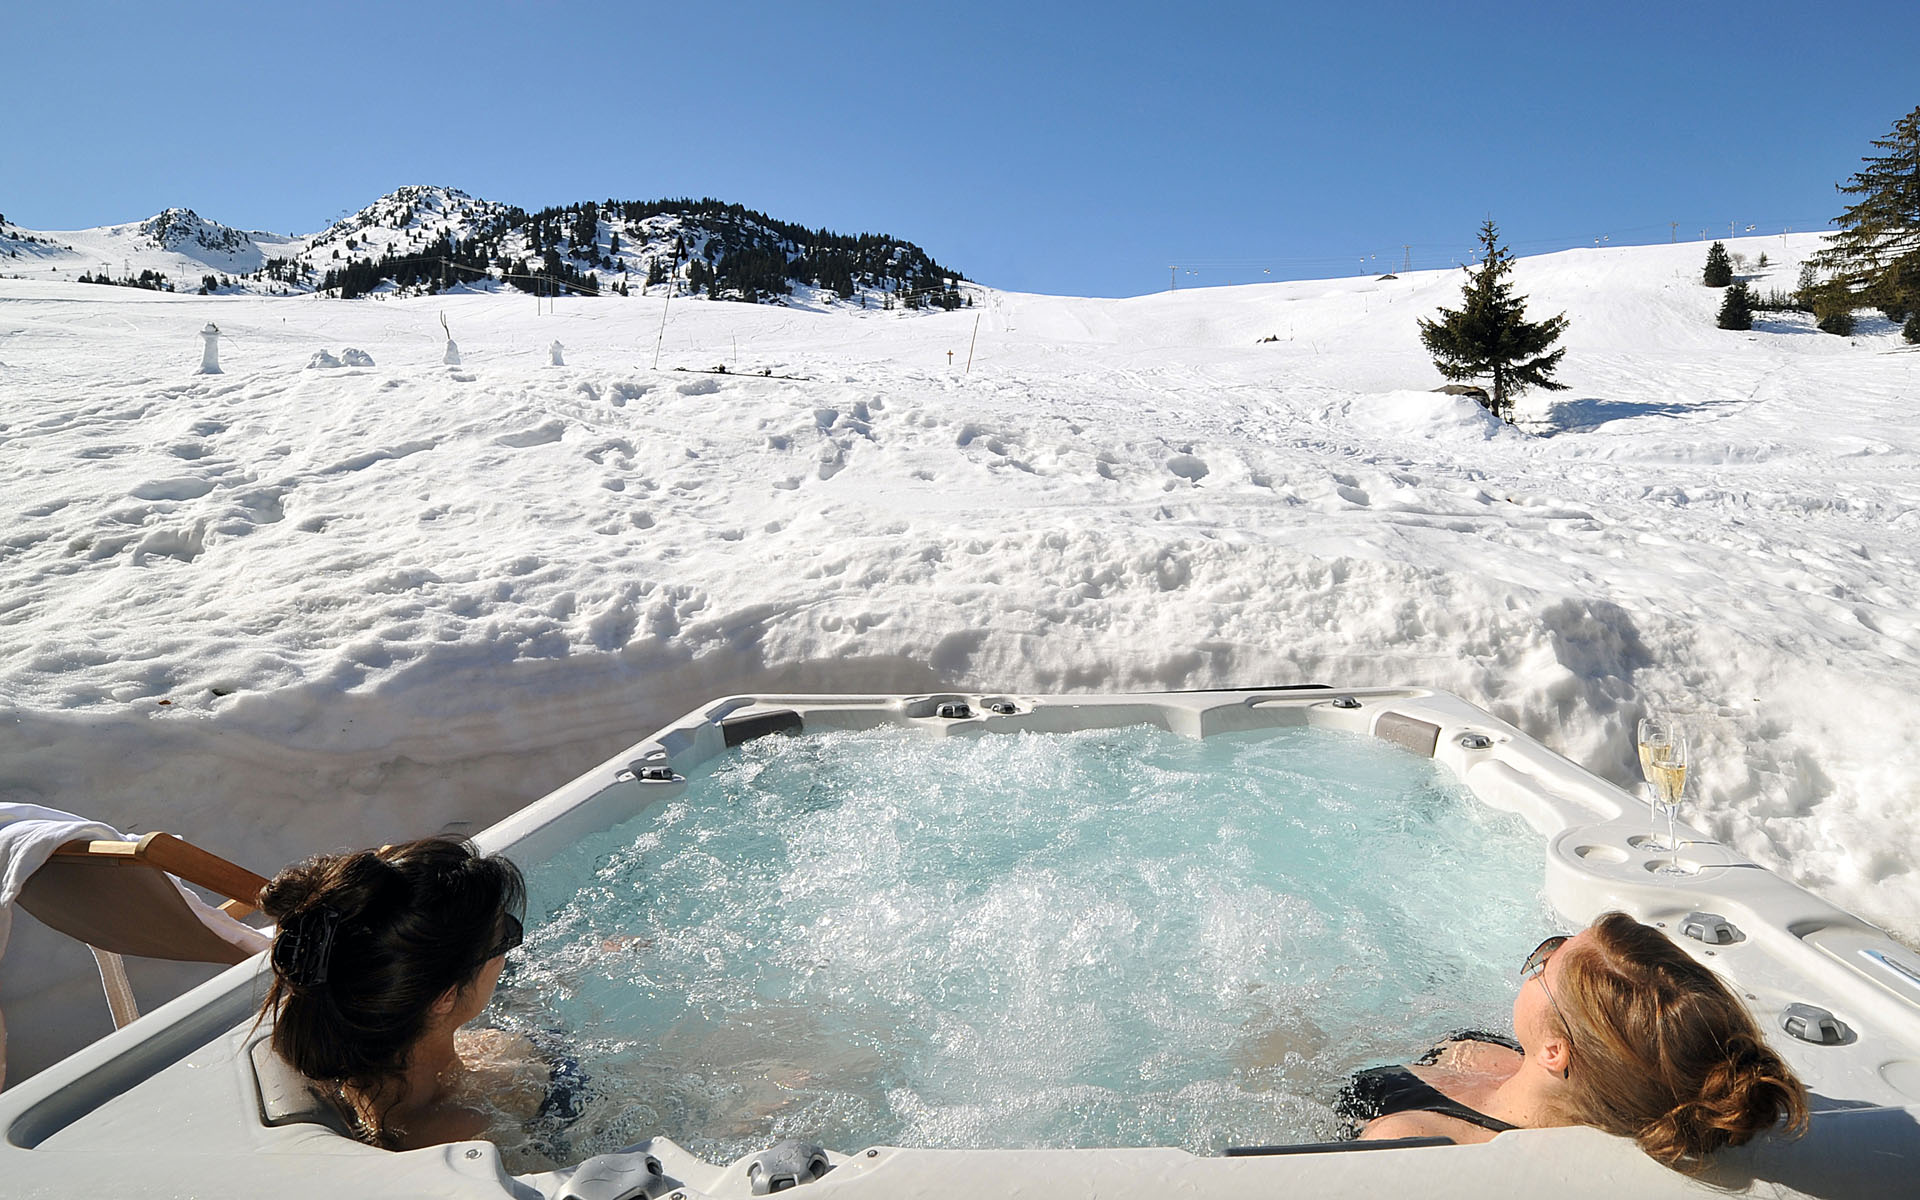 Using The Hot Tub During The Winter